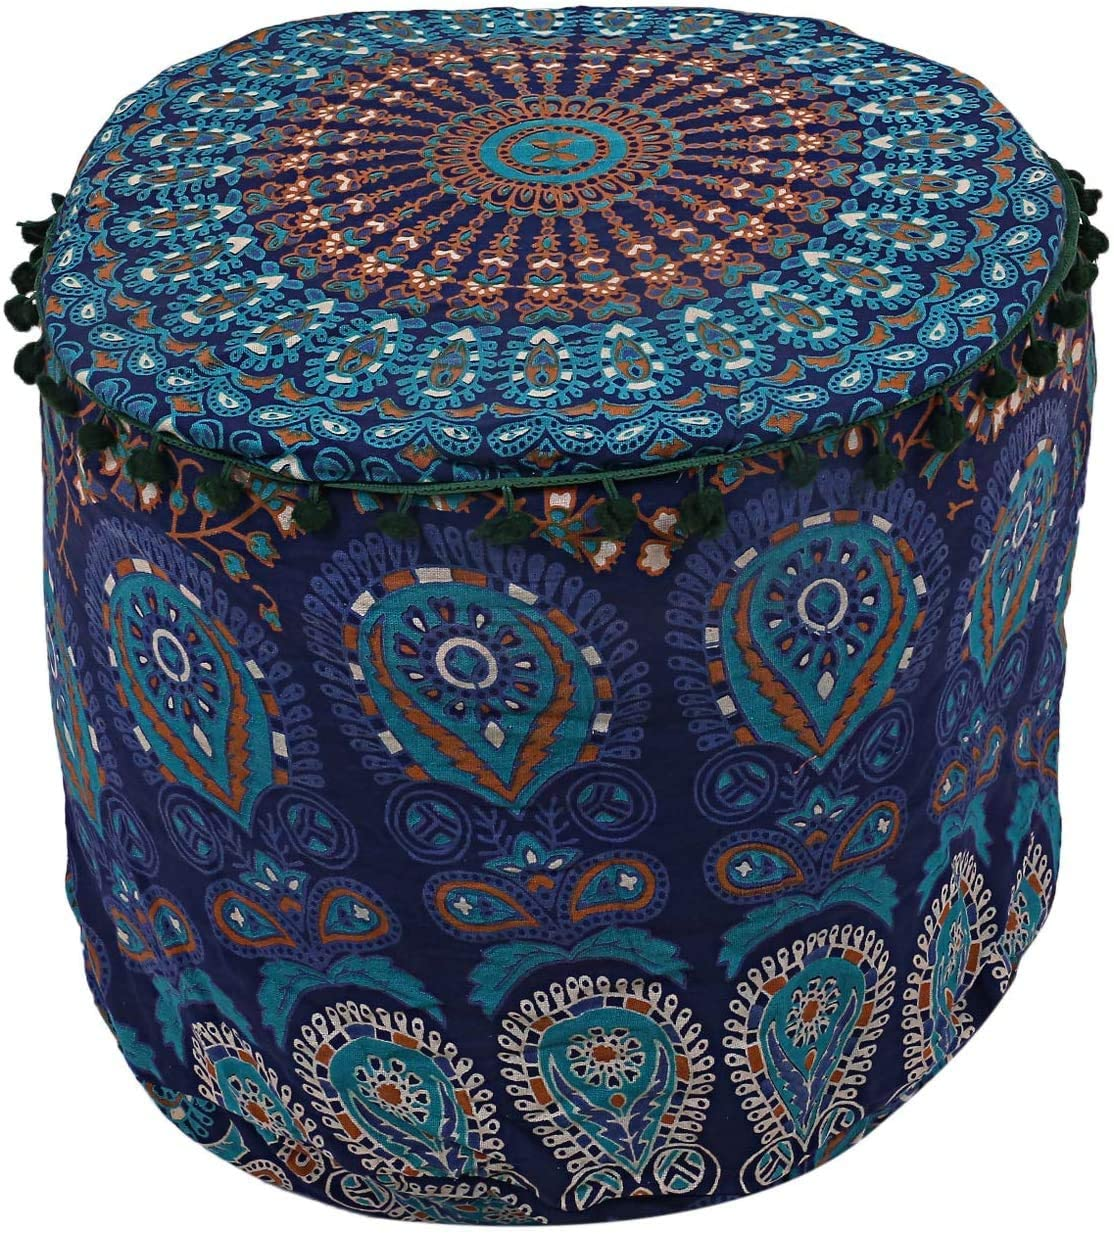 Janki Creation Cotton Round Peacock Mandala Floor Pillow Cover Indian Pouf Cover Throw Large 22'' Footstool Cover (18 x 18 x 13 Inch)